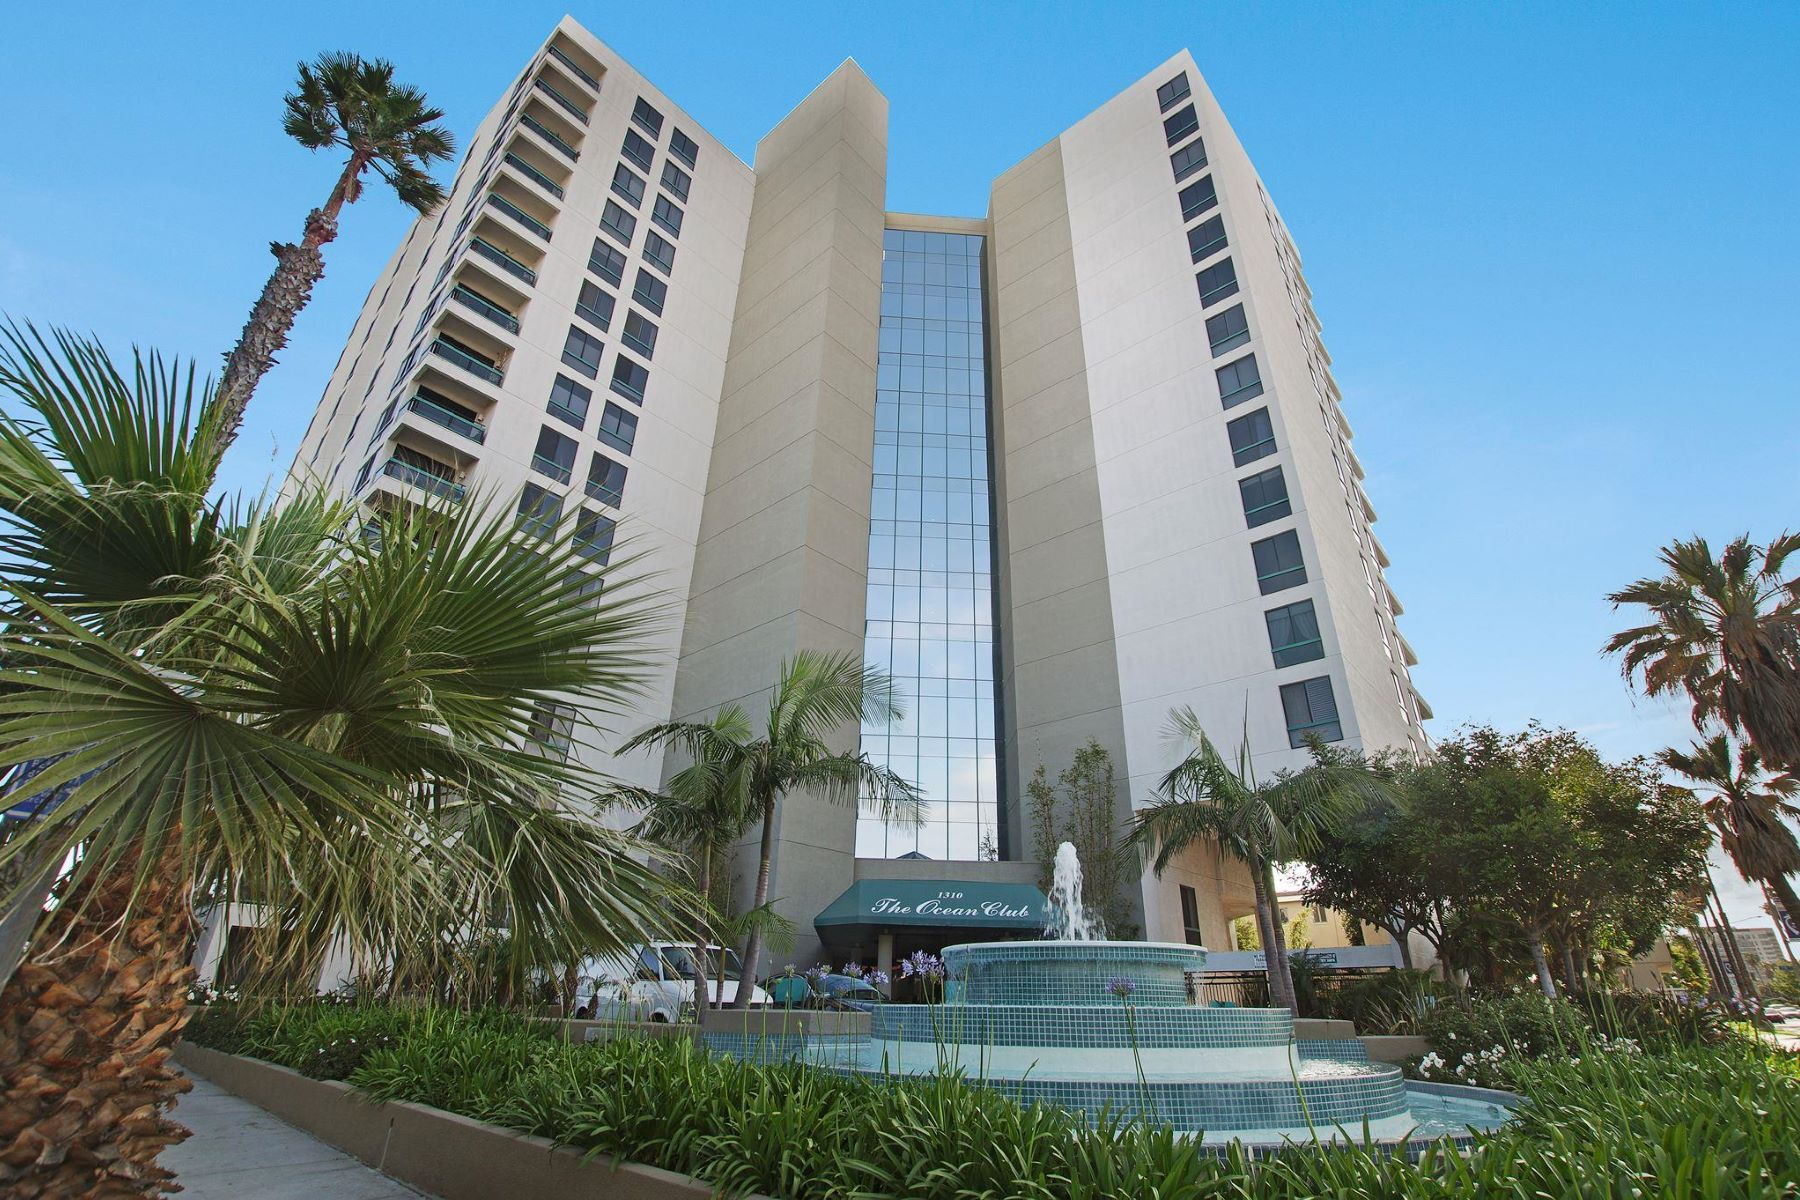 Condominiums for Sale at 1310 East Ocean Boulevard #1506, Long Beach, CA 90802 1310 East Ocean Boulevard #1506 Long Beach, California 90802 United States